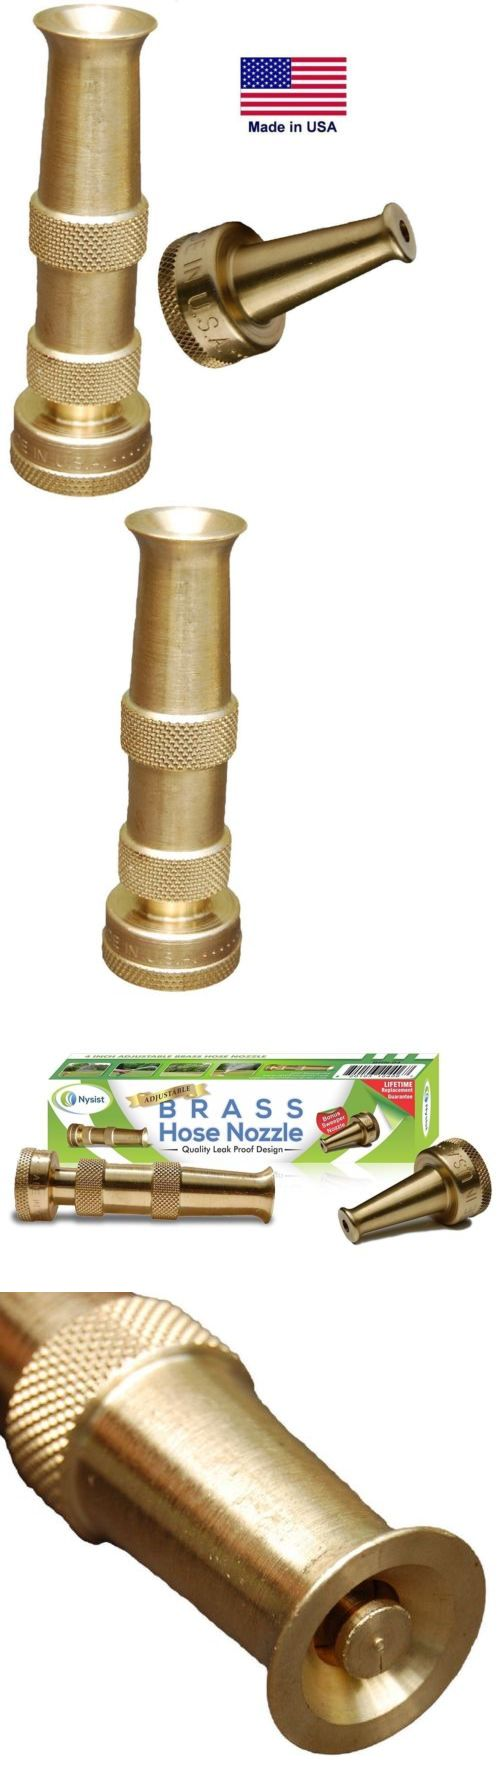 Hose Nozzles and Wands 181015: Brass Hose Nozzle - Ultimate High Pressure Garden Water Car Washer Nozzle..New!! -> BUY IT NOW ONLY: $30.85 on eBay!